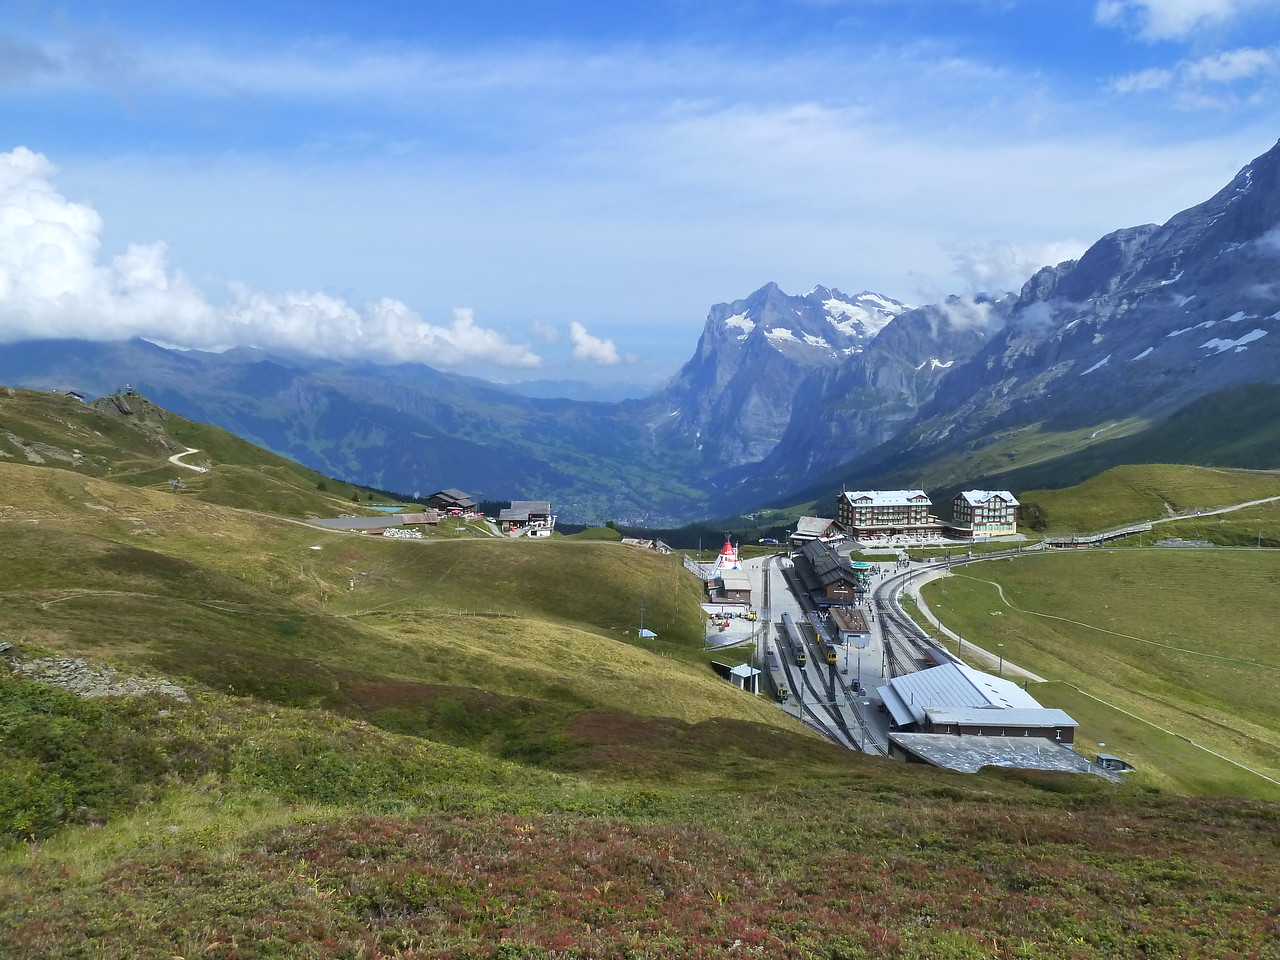 Klein Scheidegg with the train station to the Jungfraujoch.